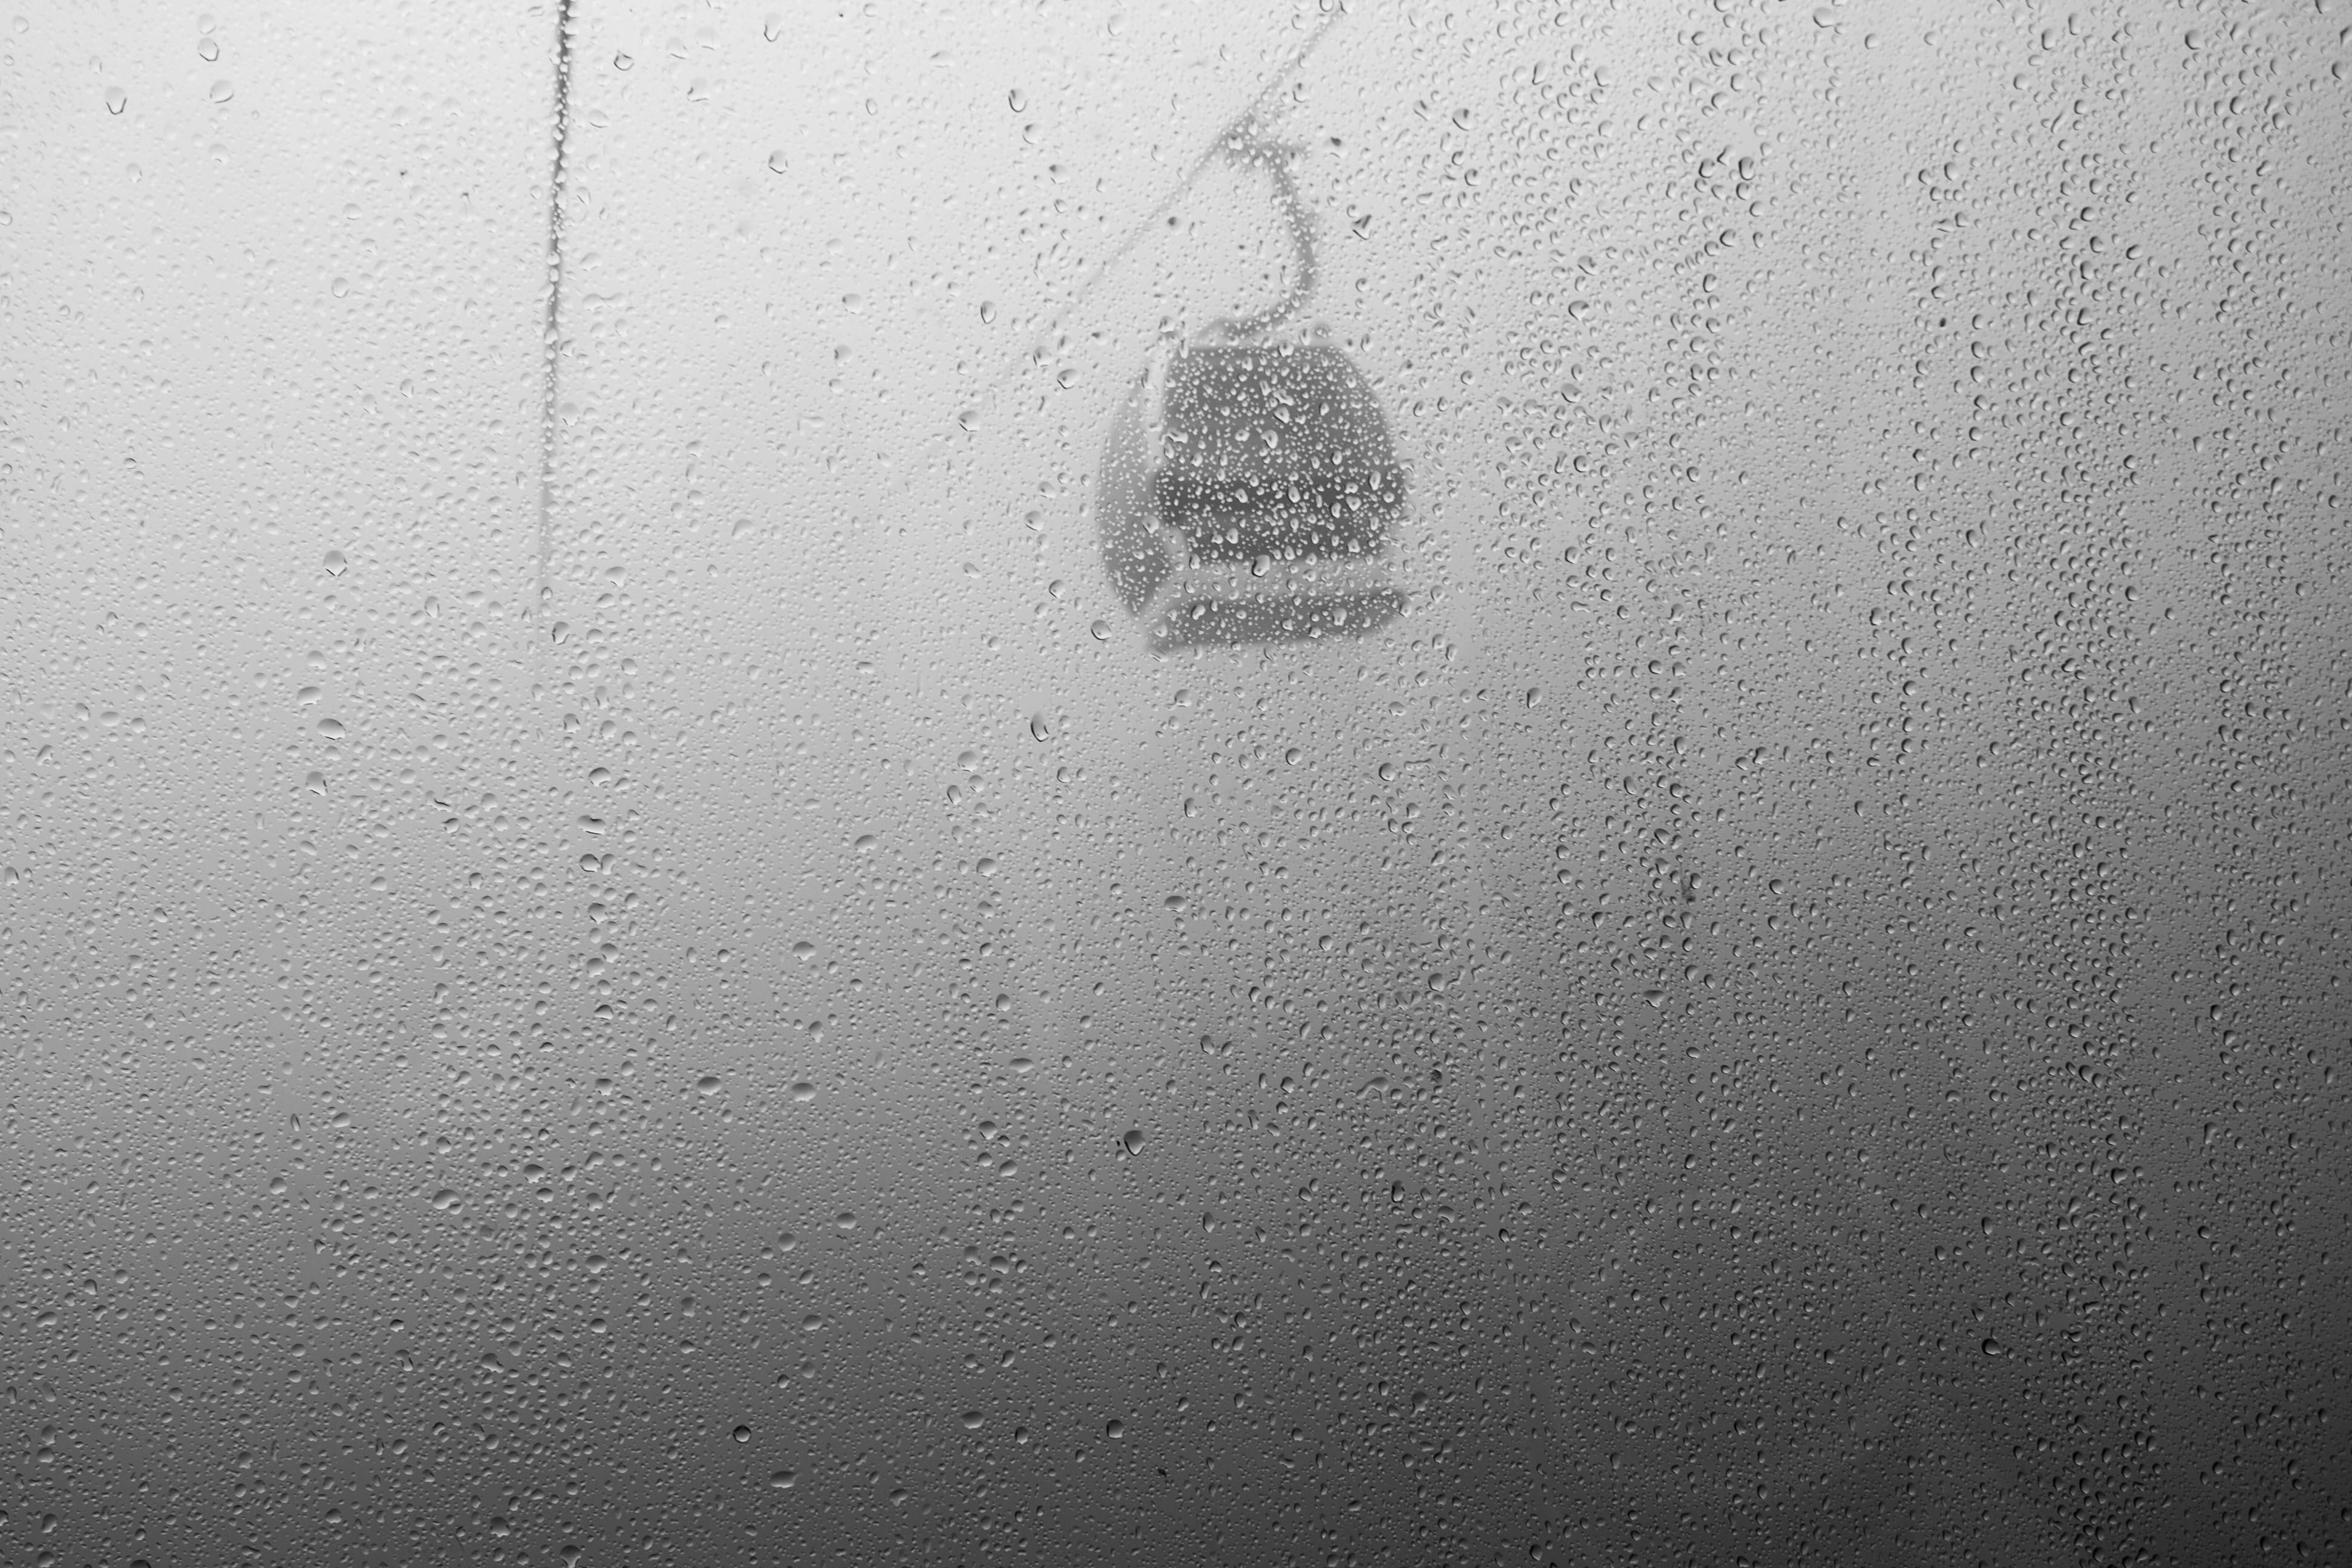 Free stock photo of black and white, cableway, mist, rain